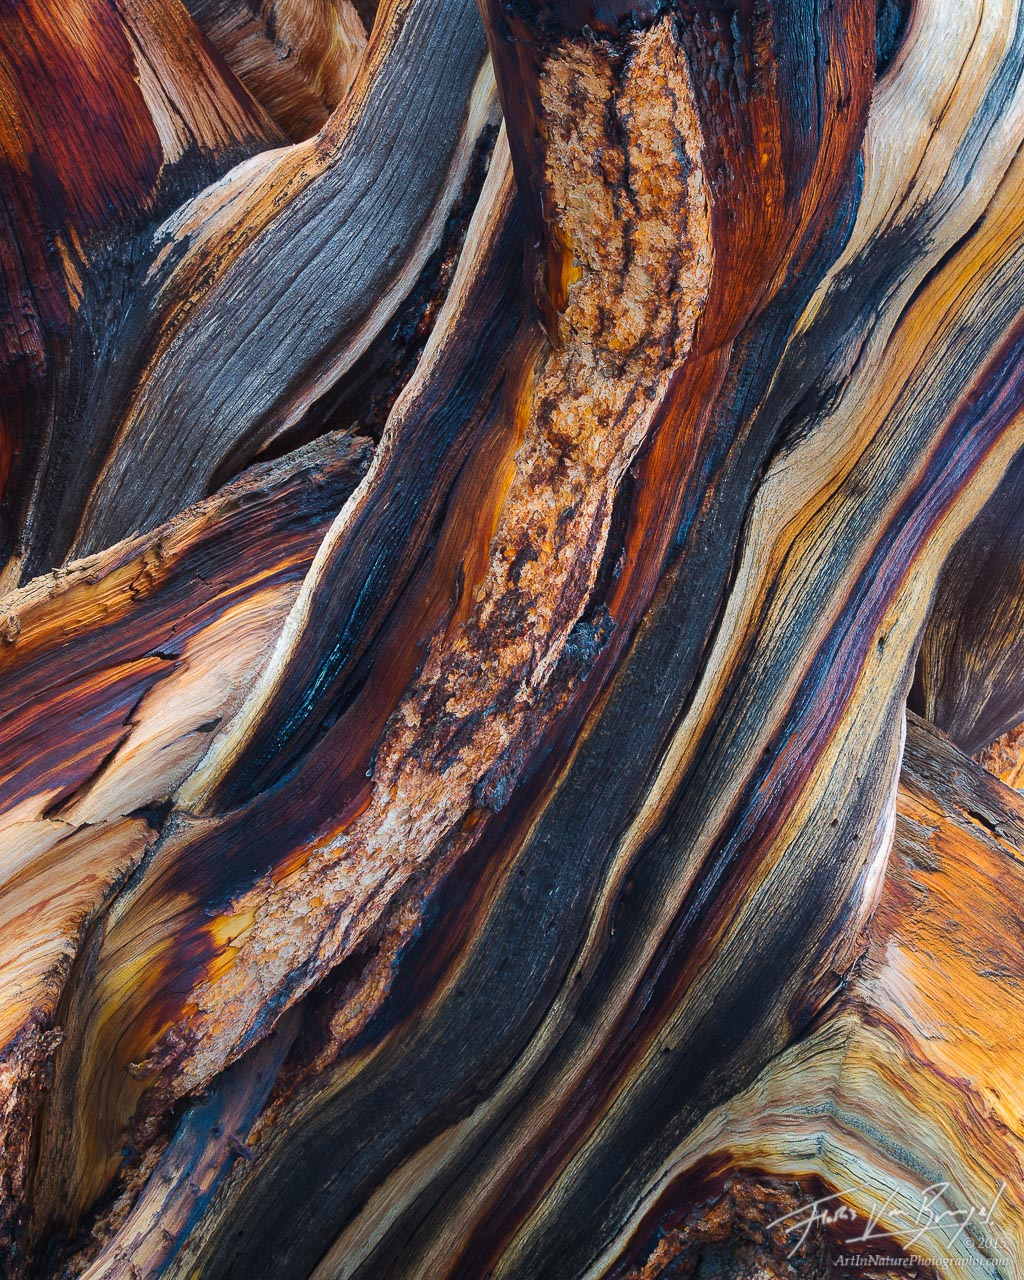 Bristlecone Wood Abstract, White Mountains, California, photo